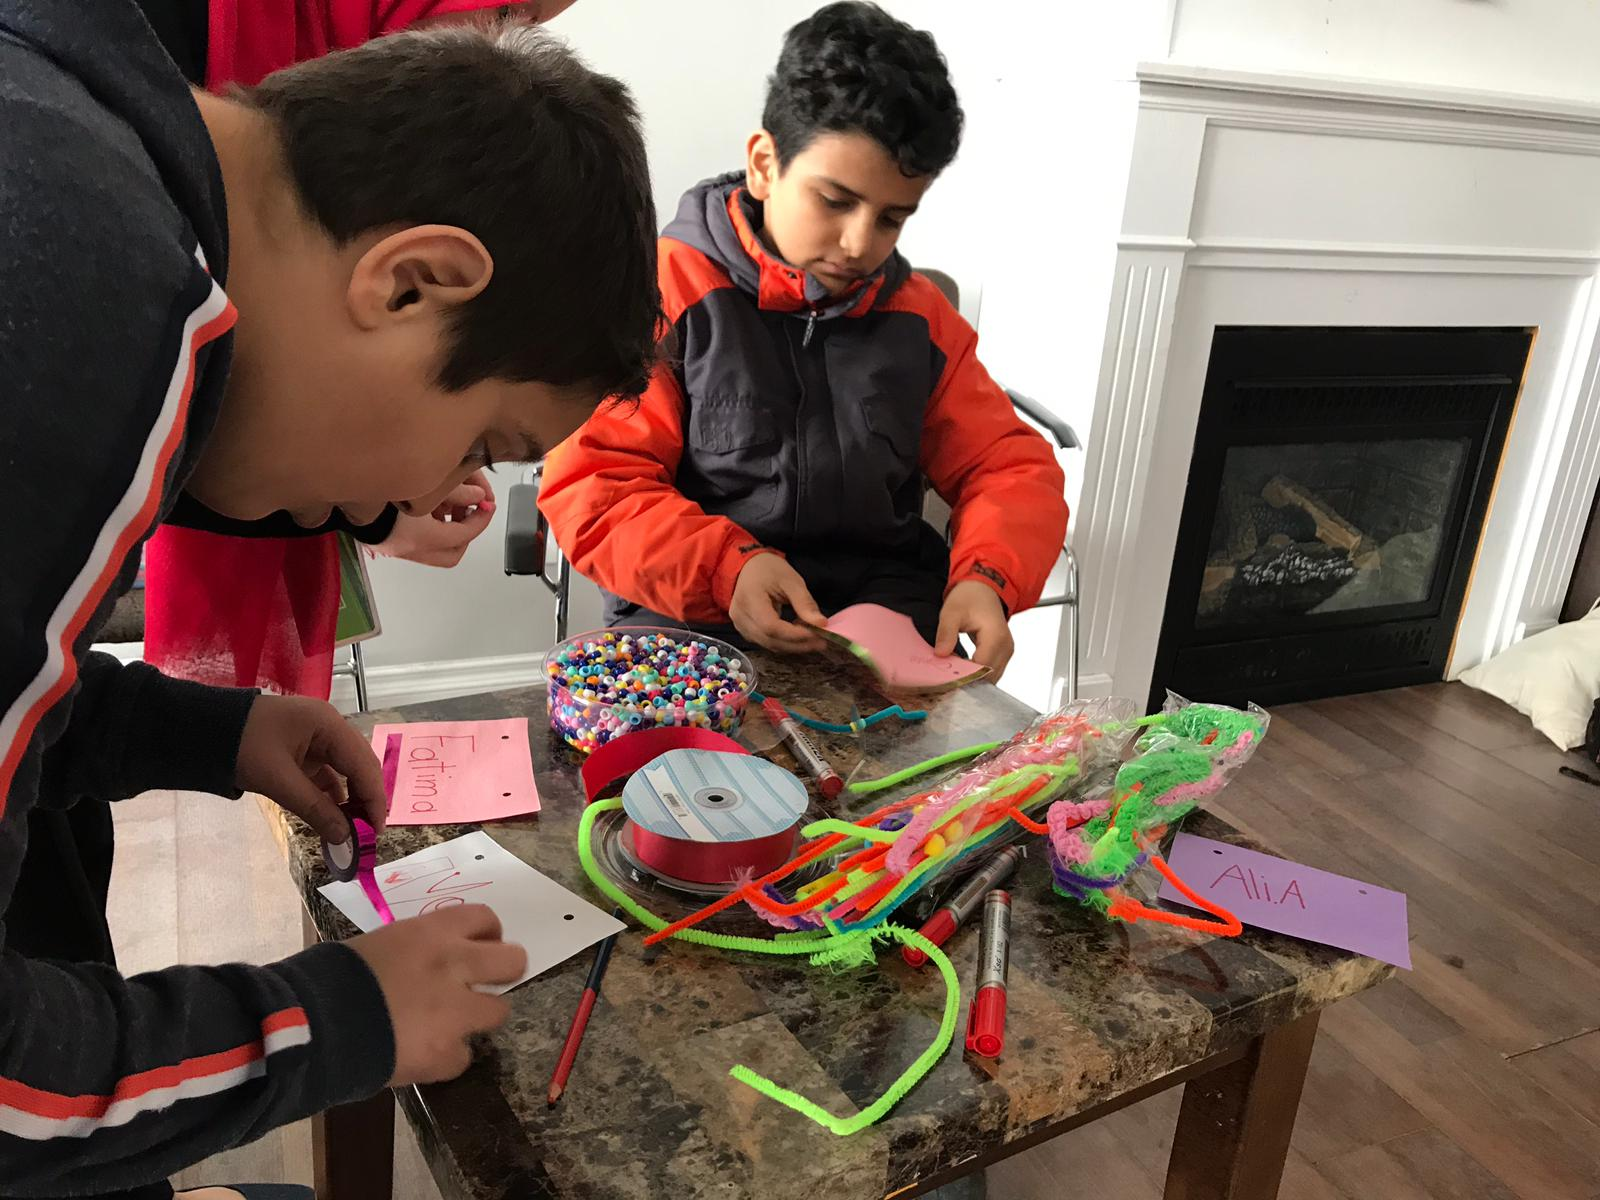 Kids crafting with pipe cleaners